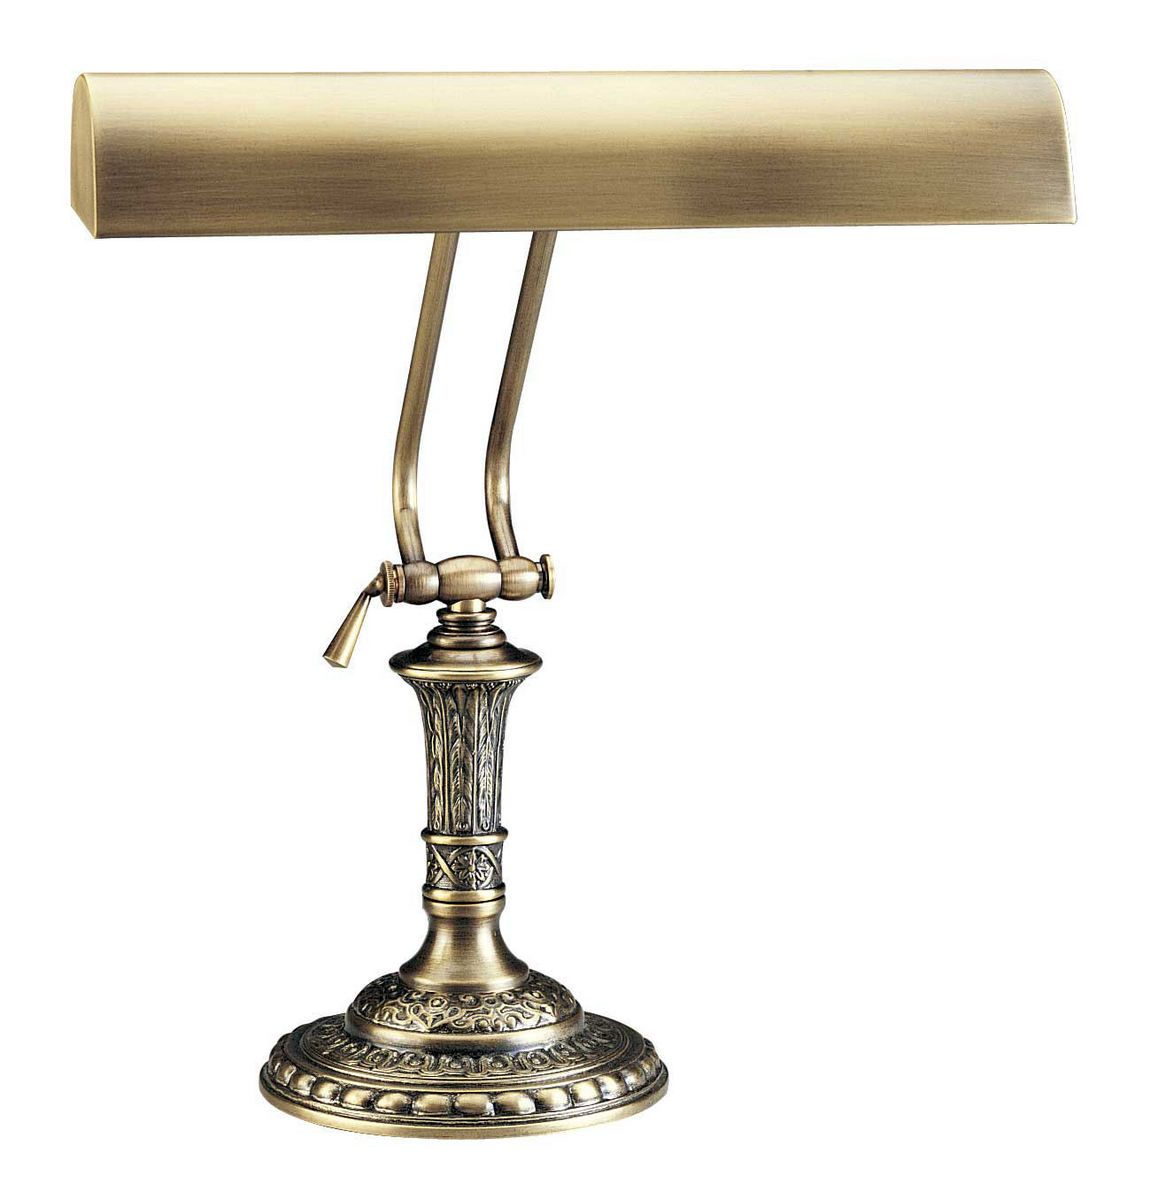 House Of Troy 14 Piano Desk Lamp In Antique Brass Finish